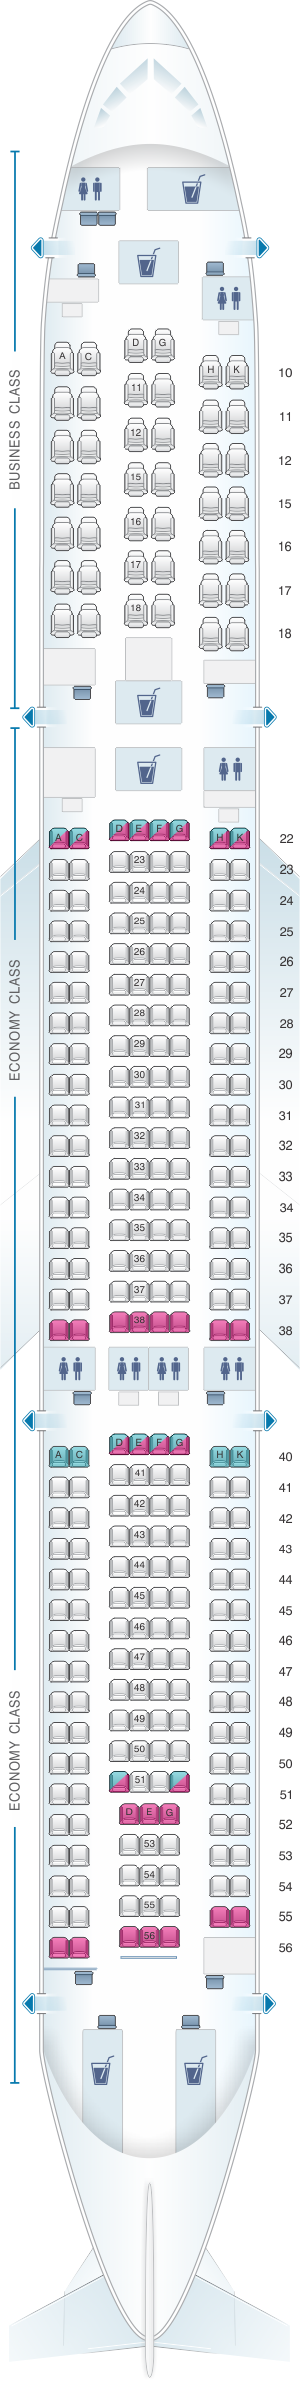 Seat map for Cathay Pacific Airways Cathay Dragon Airbus A330 300 (A33C)